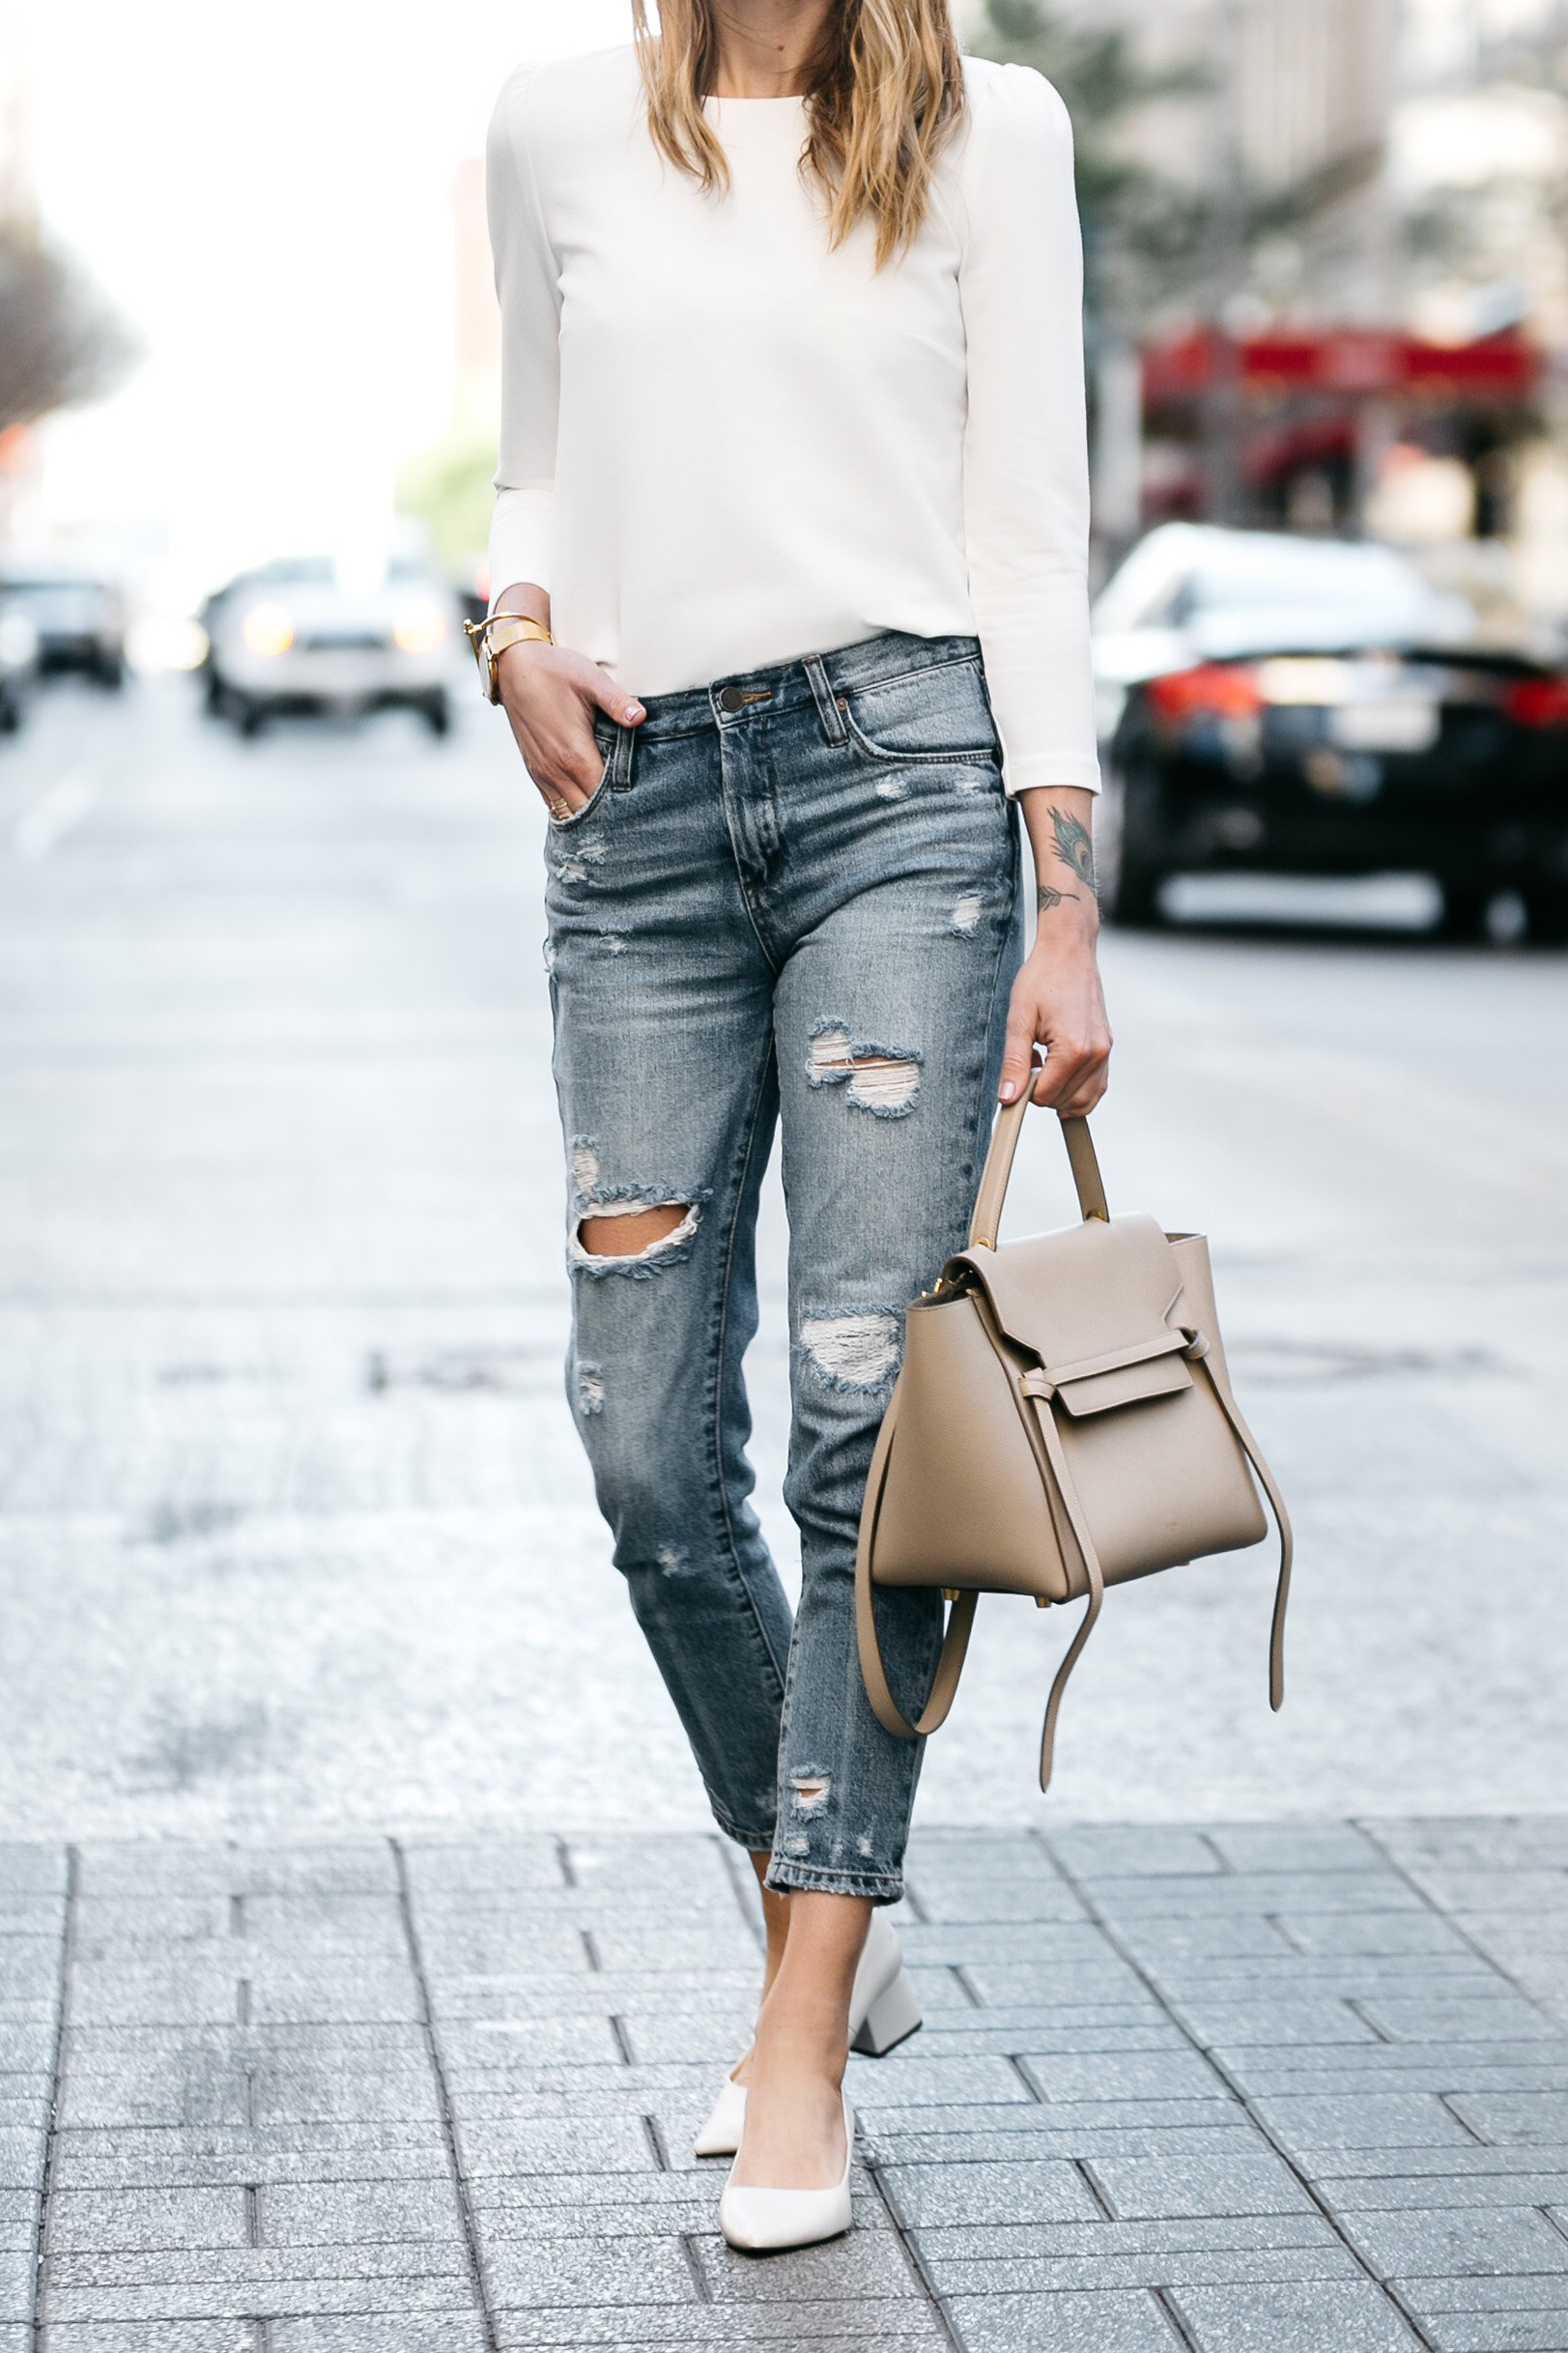 Fashion Jackson, Dallas, Blogger, Fashion Blogger, Street Style, Ann Taylor White Puff Sleeve Top, Celine Belt Bag, Zara White Block Heels, Blanknyc Denim Ripped Mom Jeans